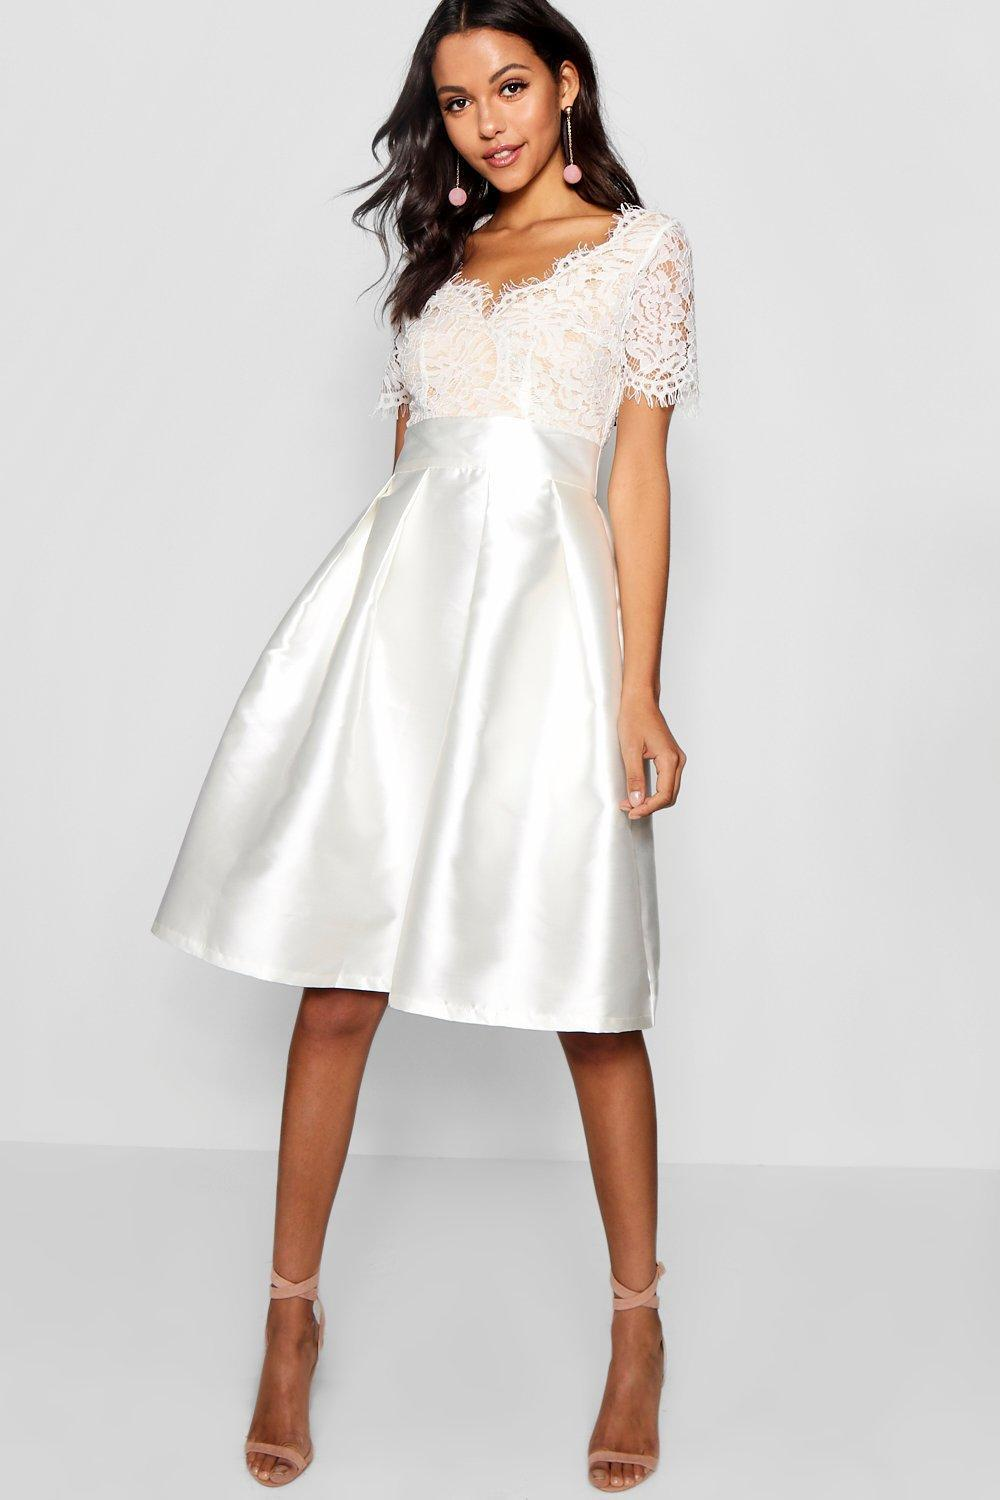 Lyst - Boohoo Boutique Eyelash Lace Skater Dress in White 42c874d42